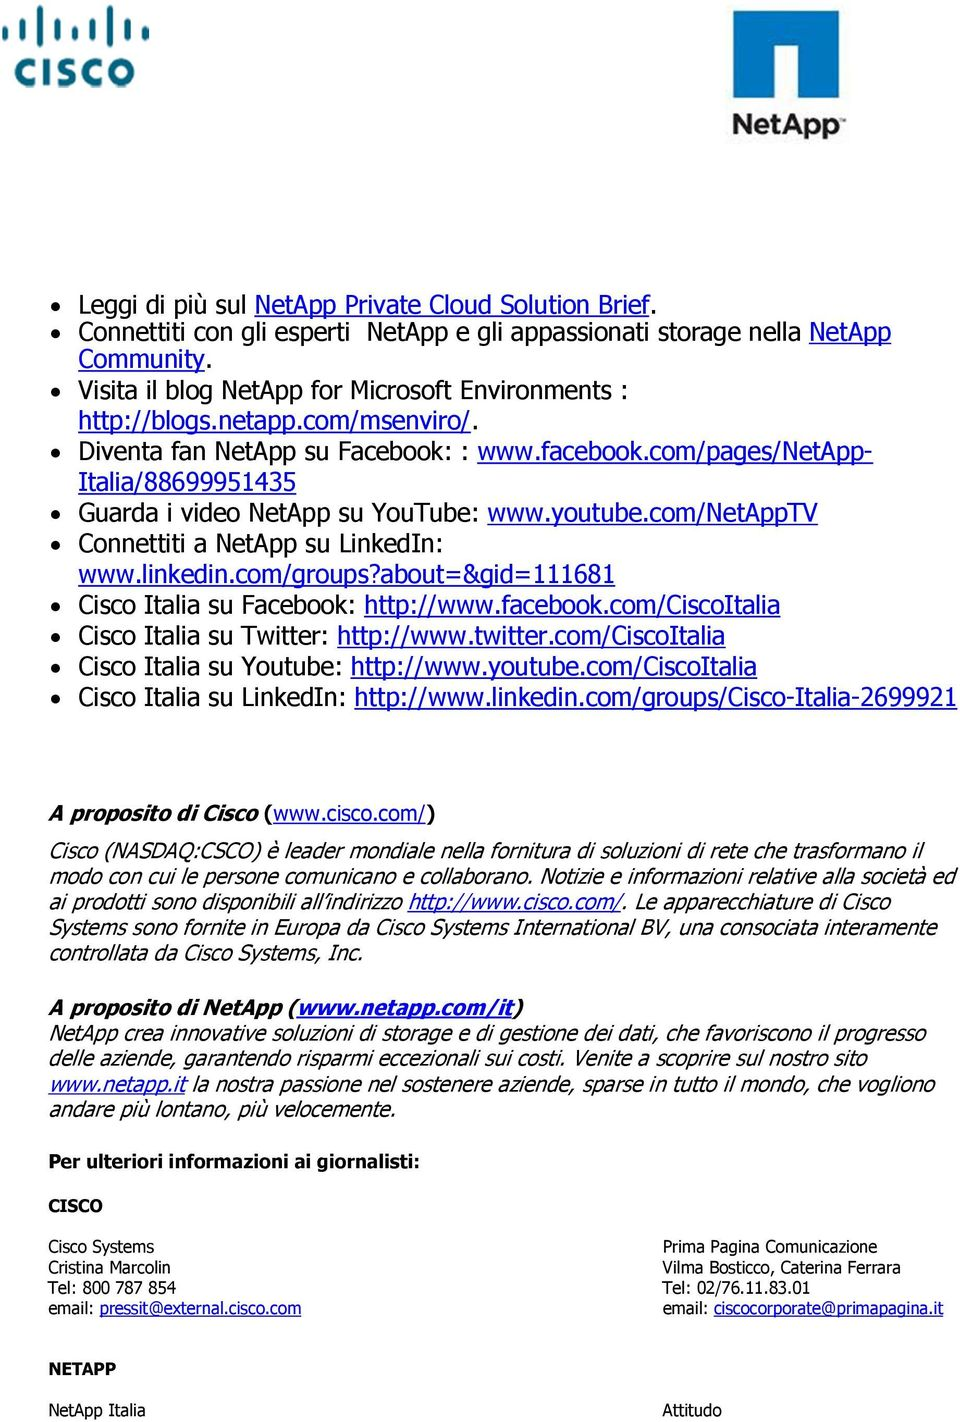 com/pages/netapp- Italia/88699951435 Guarda i video NetApp su YouTube: www.youtube.com/netapptv Connettiti a NetApp su LinkedIn: www.linkedin.com/groups?